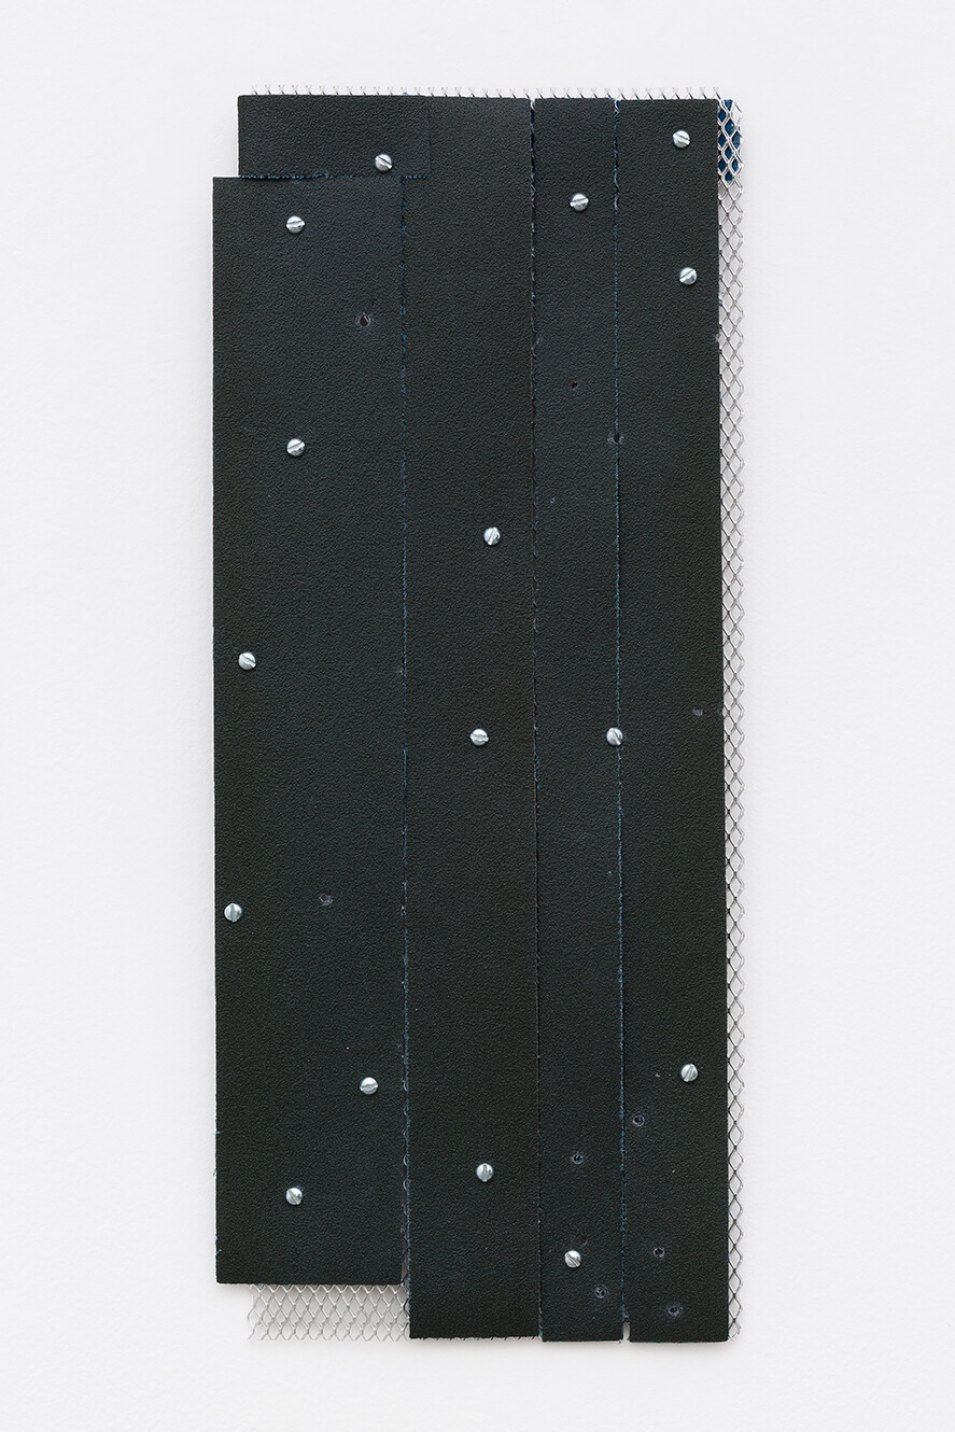 Alessandro Carano, <em>untitled</em>, 2017, collage: sandpaper, grid of aluminum and screw, 50 × 20 cm - Mendes Wood DM